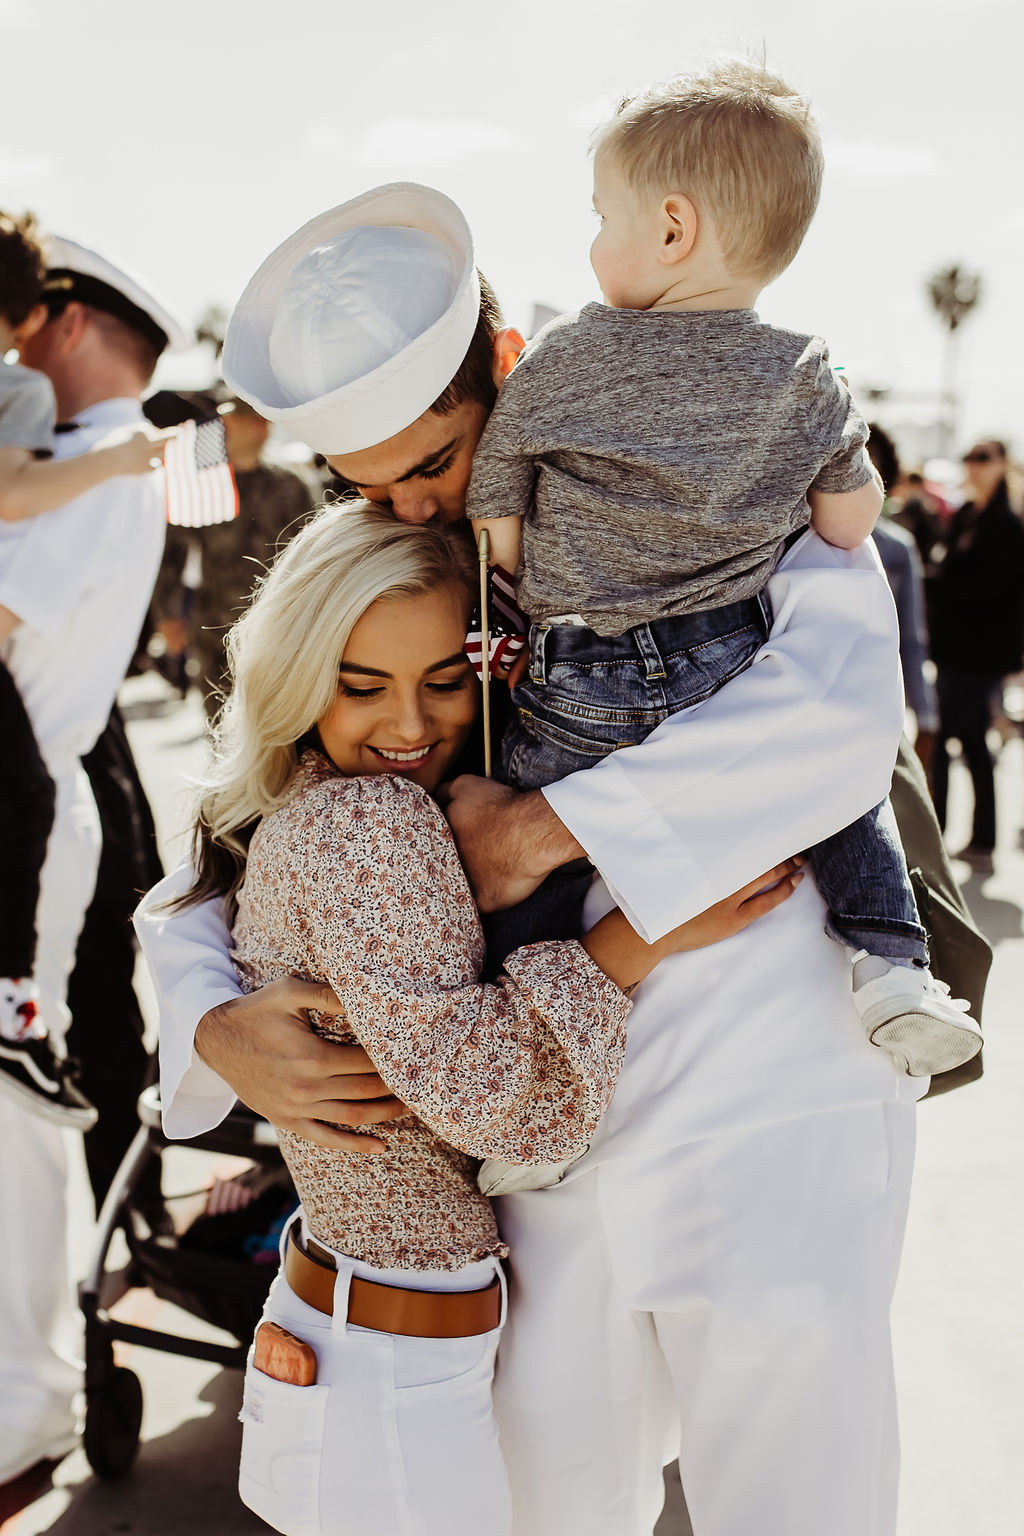 us navy ship 32nd street naval base family hugging kissing baby boy {san diego lifestyle child couples family military homecoming photographer}